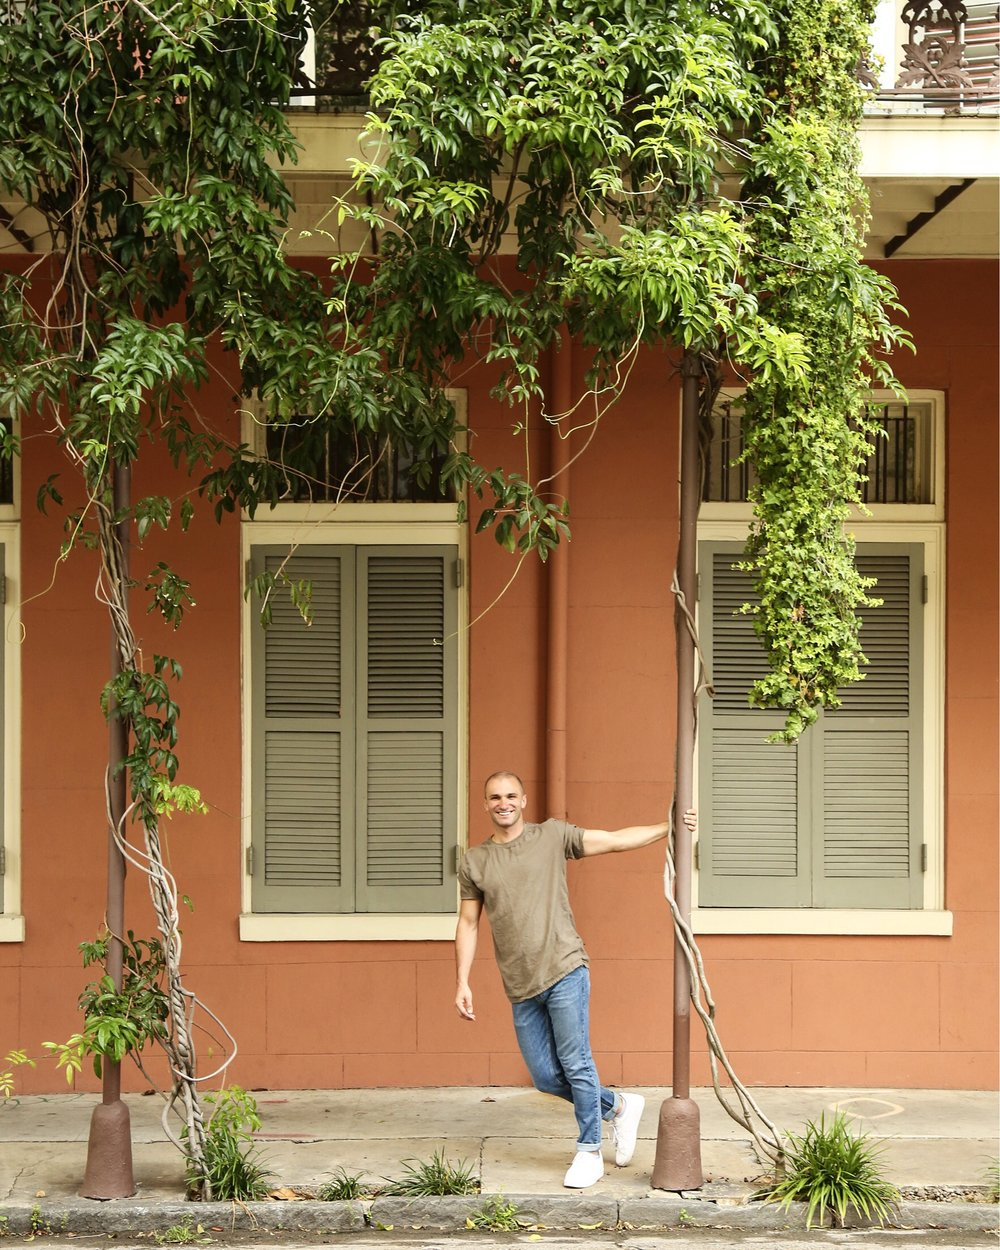 Lol look at this gorgeous vine-covered home we will never be able to afford!